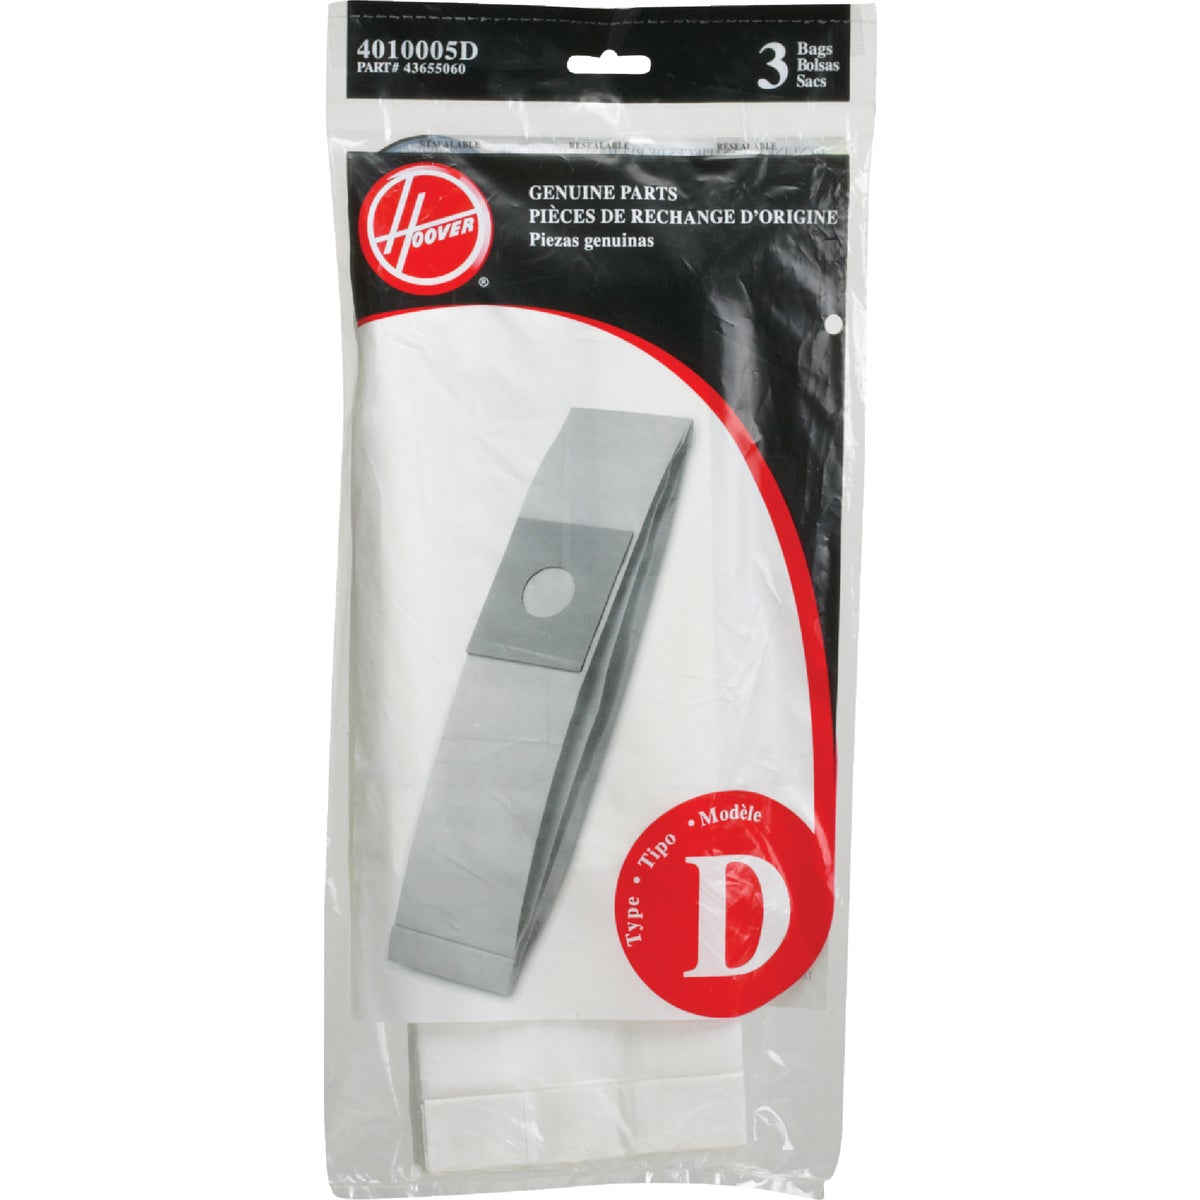 TYPE D VAC CLEANER BAG - 4010005D by Hoover Co